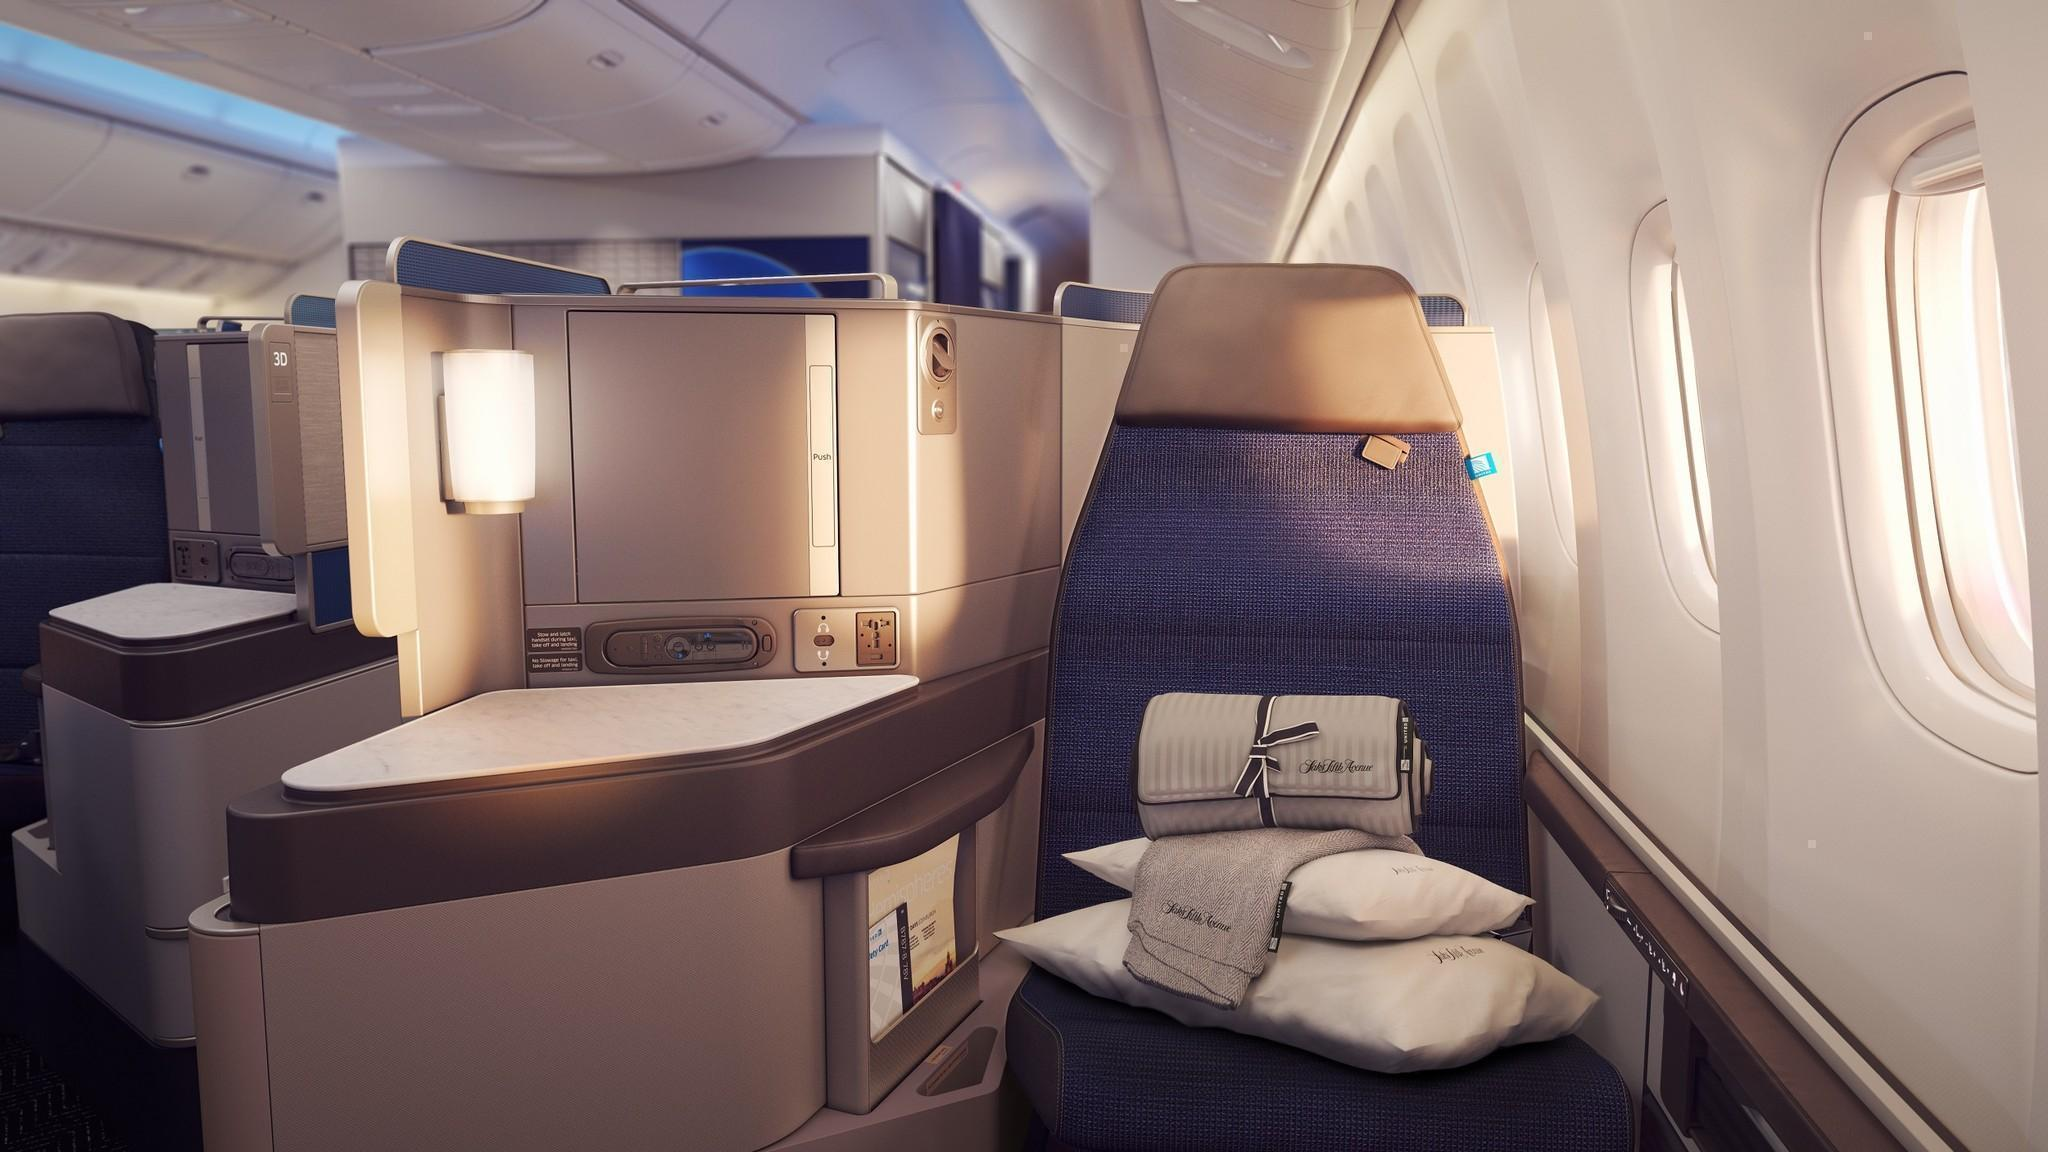 United Airlines hopes slim seats and exclusive lounges will help generate $3 billion - LA Times